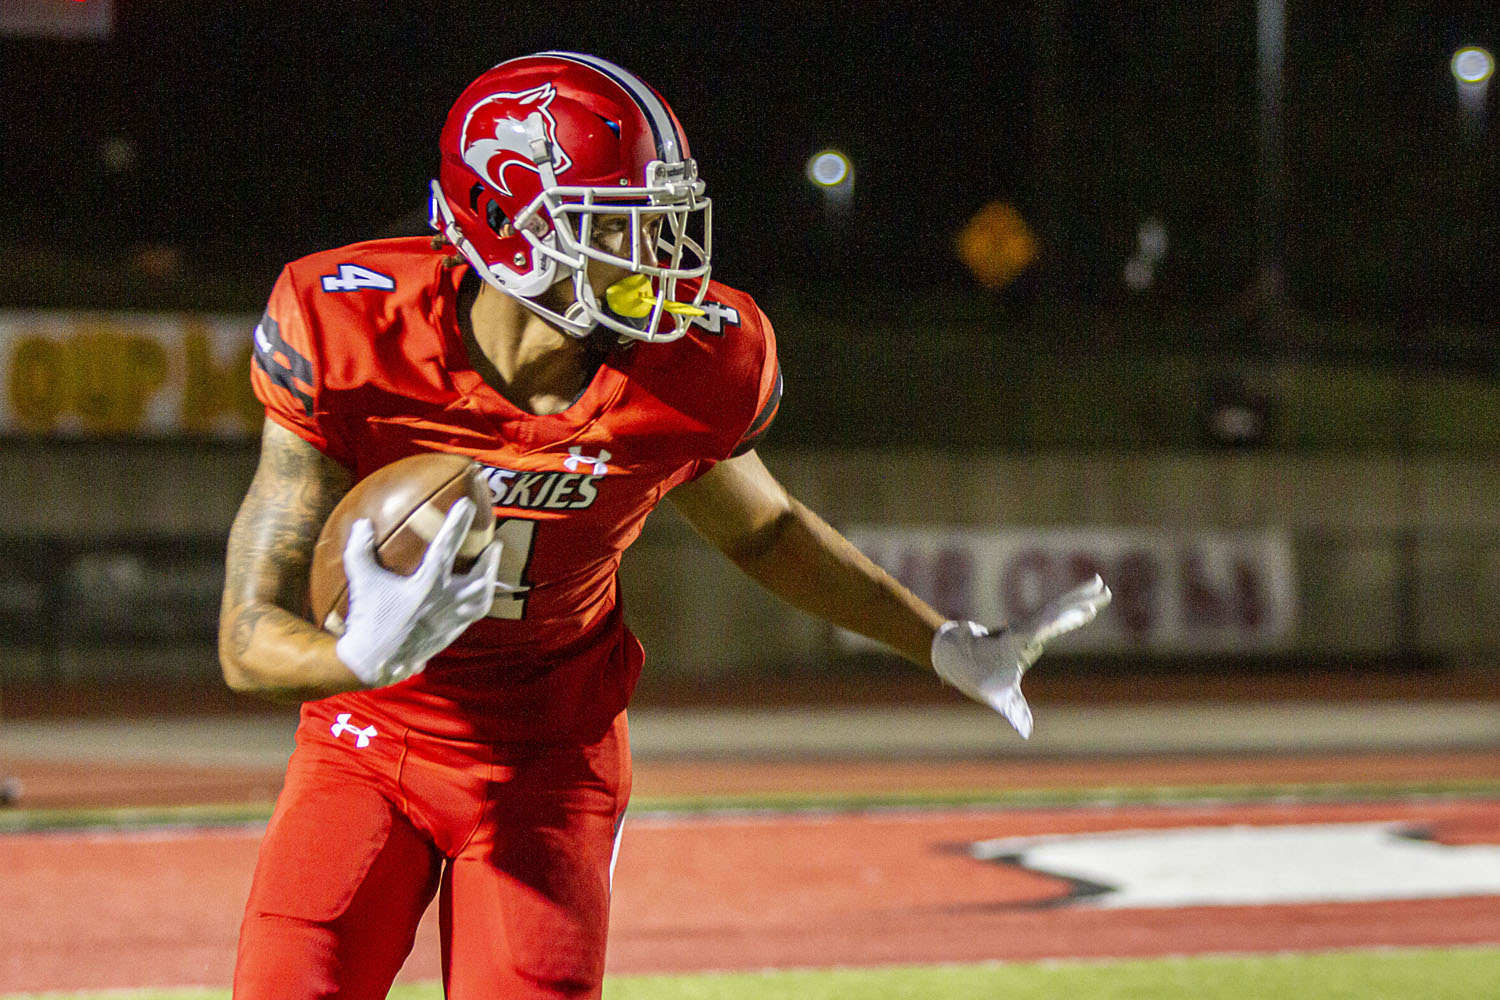 Hewitt-Trussville looks to regroup before playoff push begins